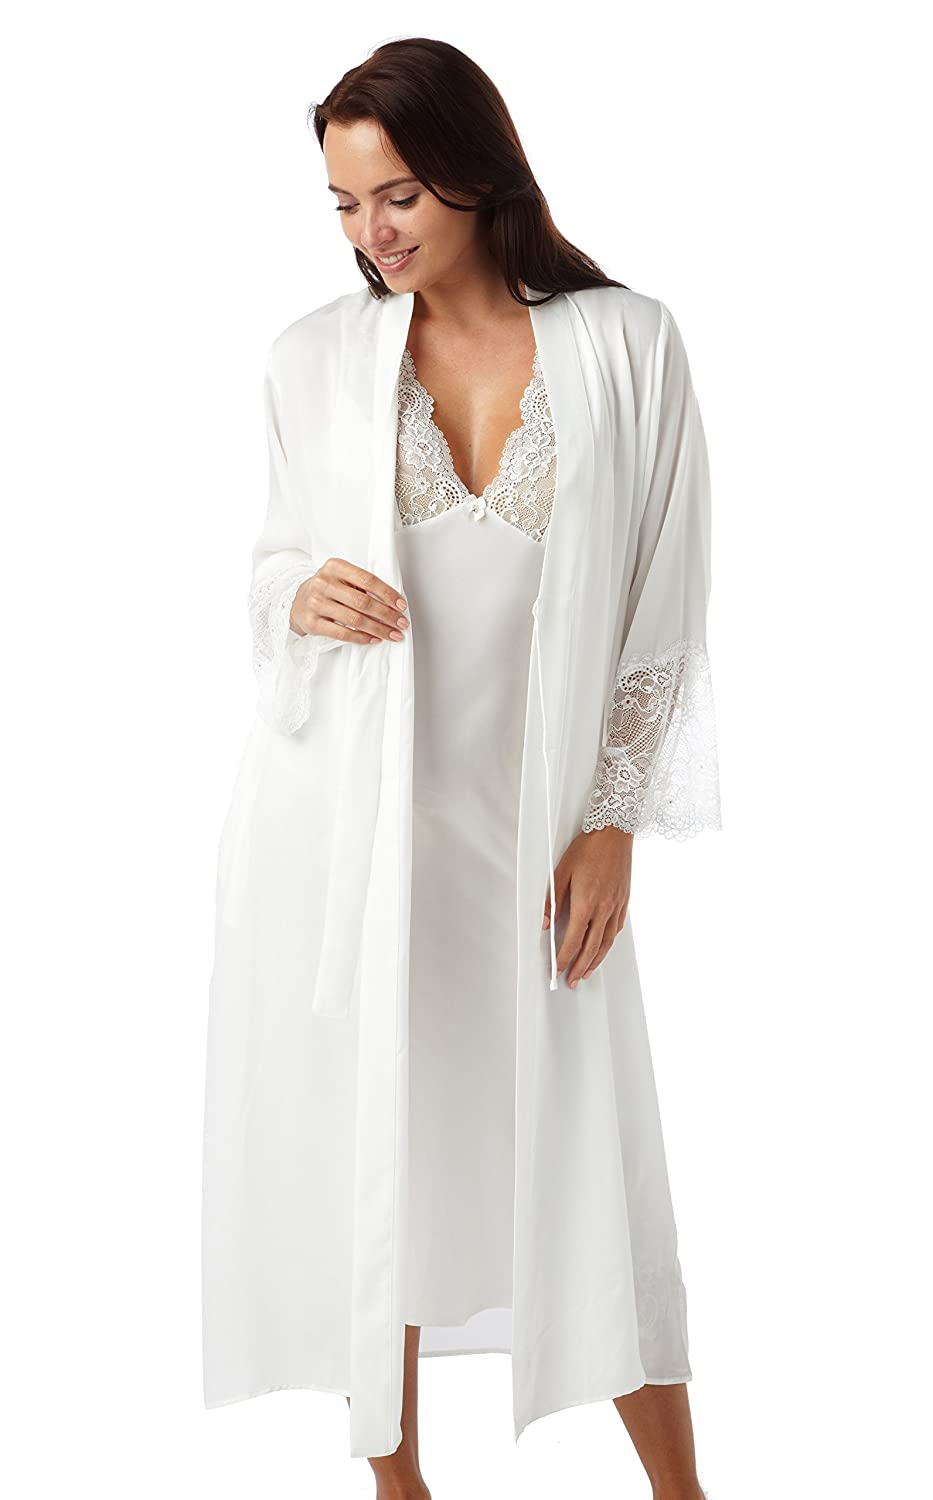 Ladies Luxury Ivory Negligee and Nightdress Set. Sizes 8 10 12 14 16 ...